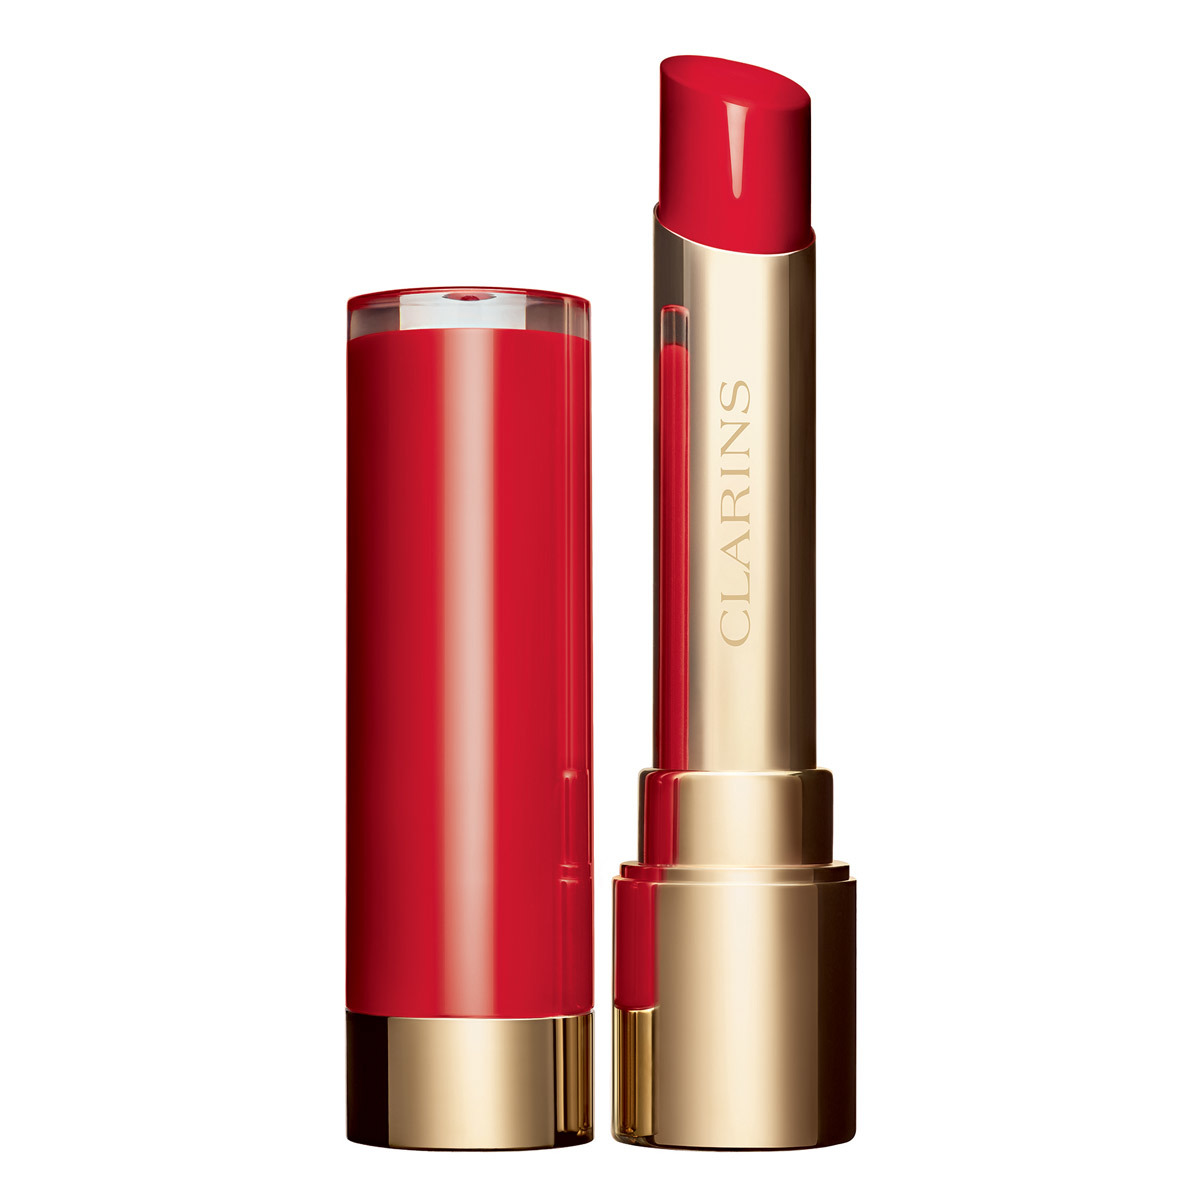 Joli Rouge Lacquer, Clarins.